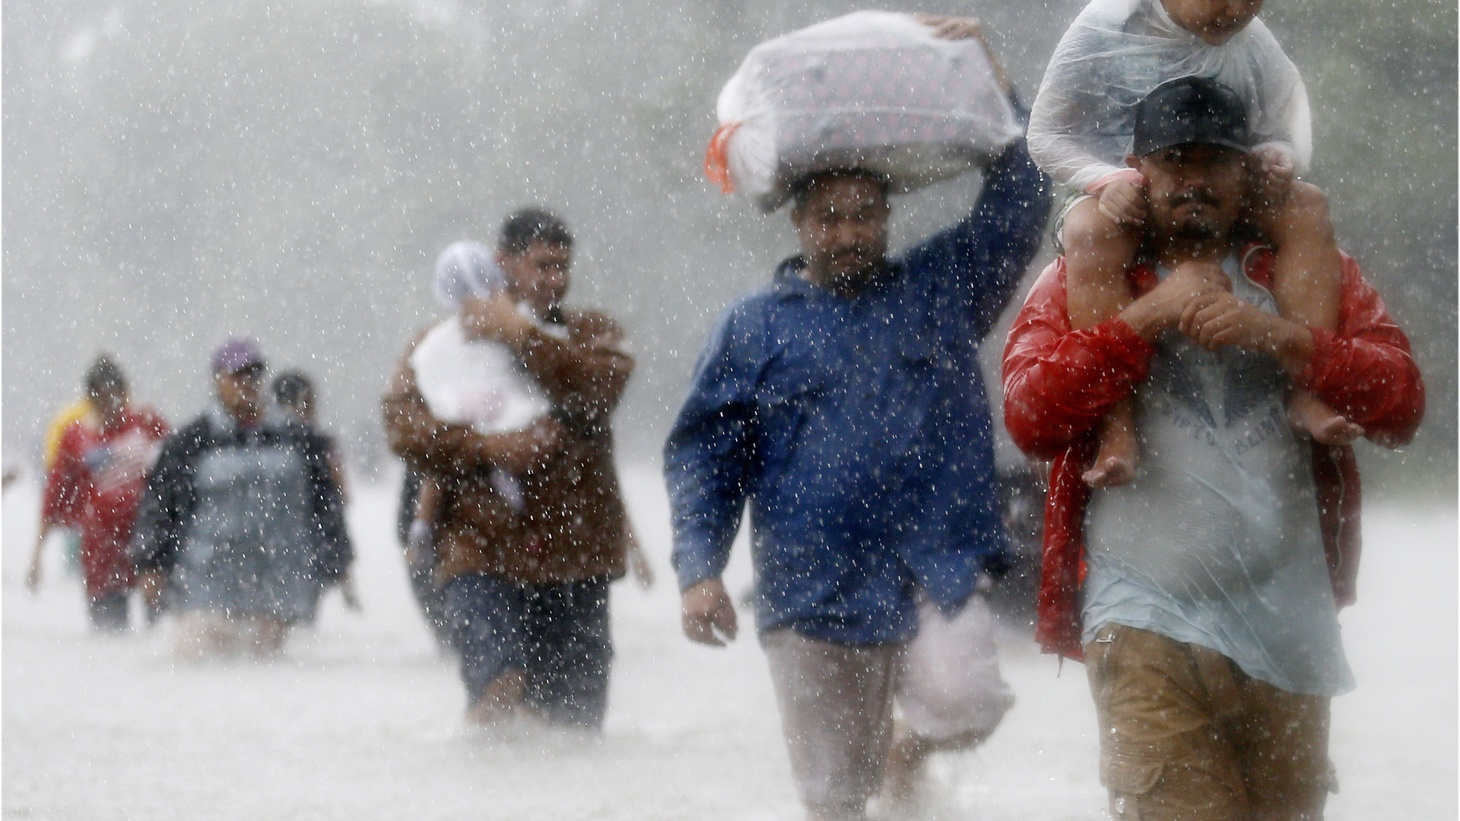 We find out why Houston wasn't prepared for a storm like Harvey, and how Los Angeles city officials are preparing for possible catastrophic flooding in the event of a major storm.